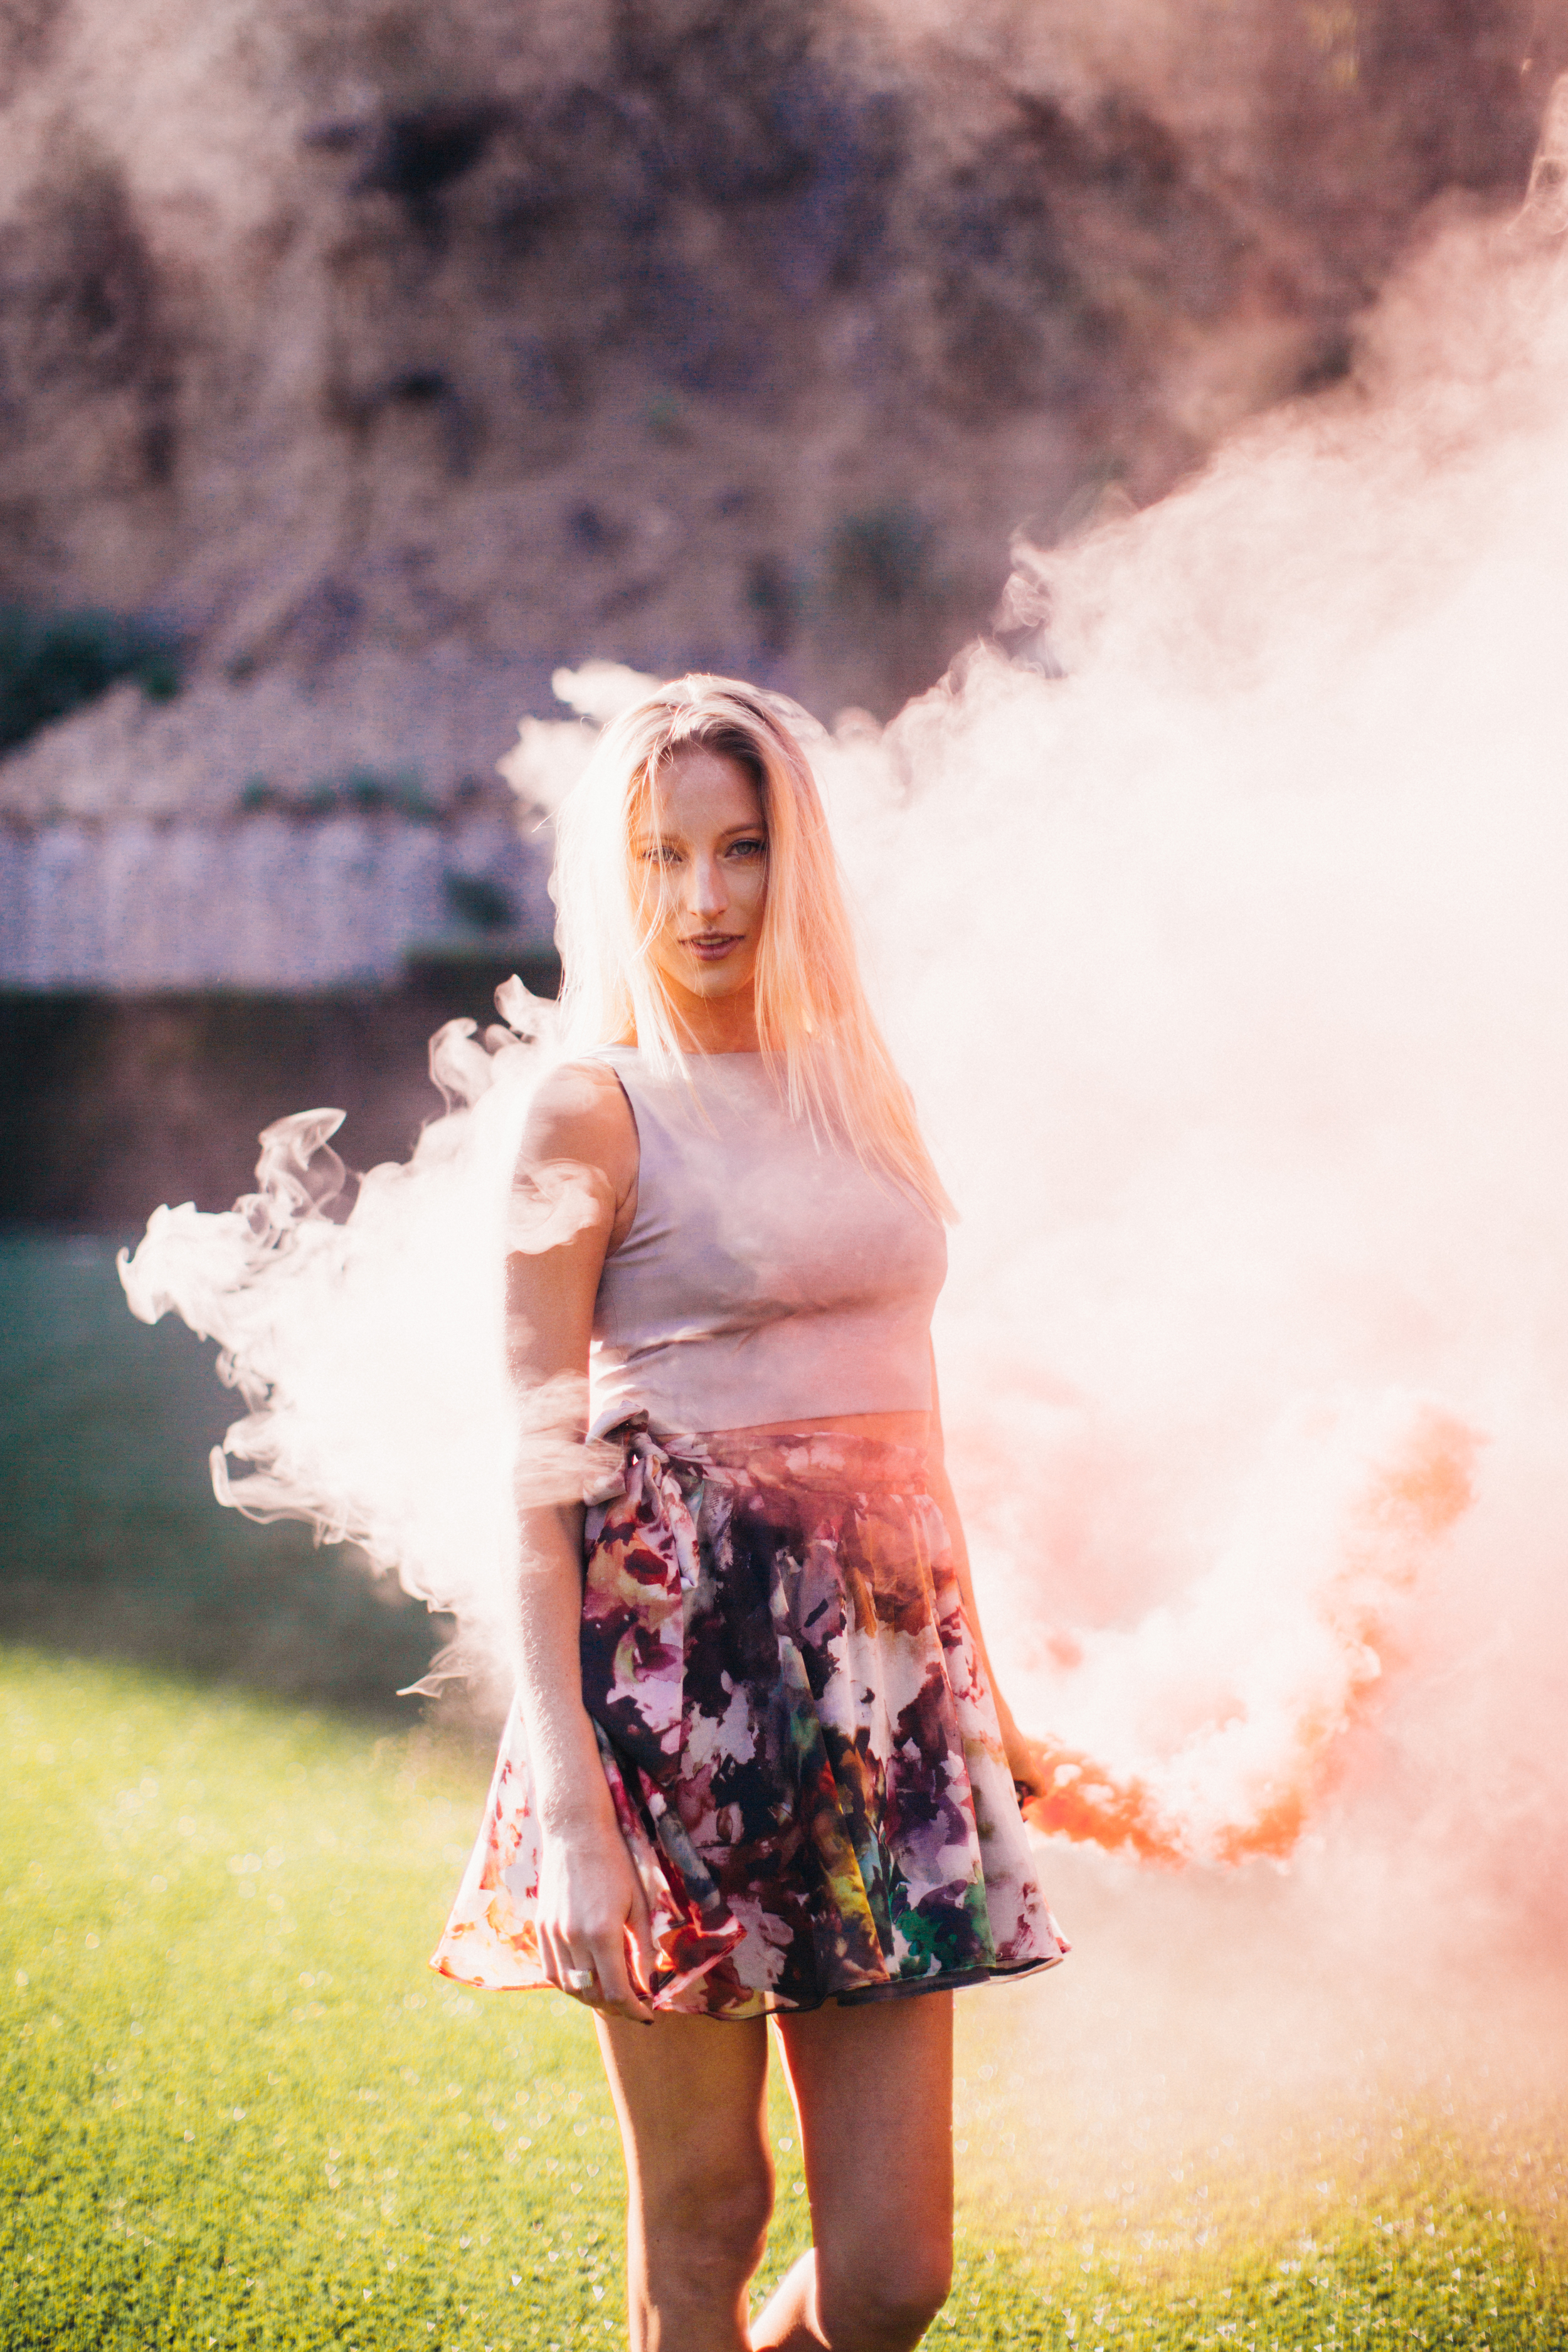 Los Angeles Smoke Lifestyle Photoshoot by The Finches